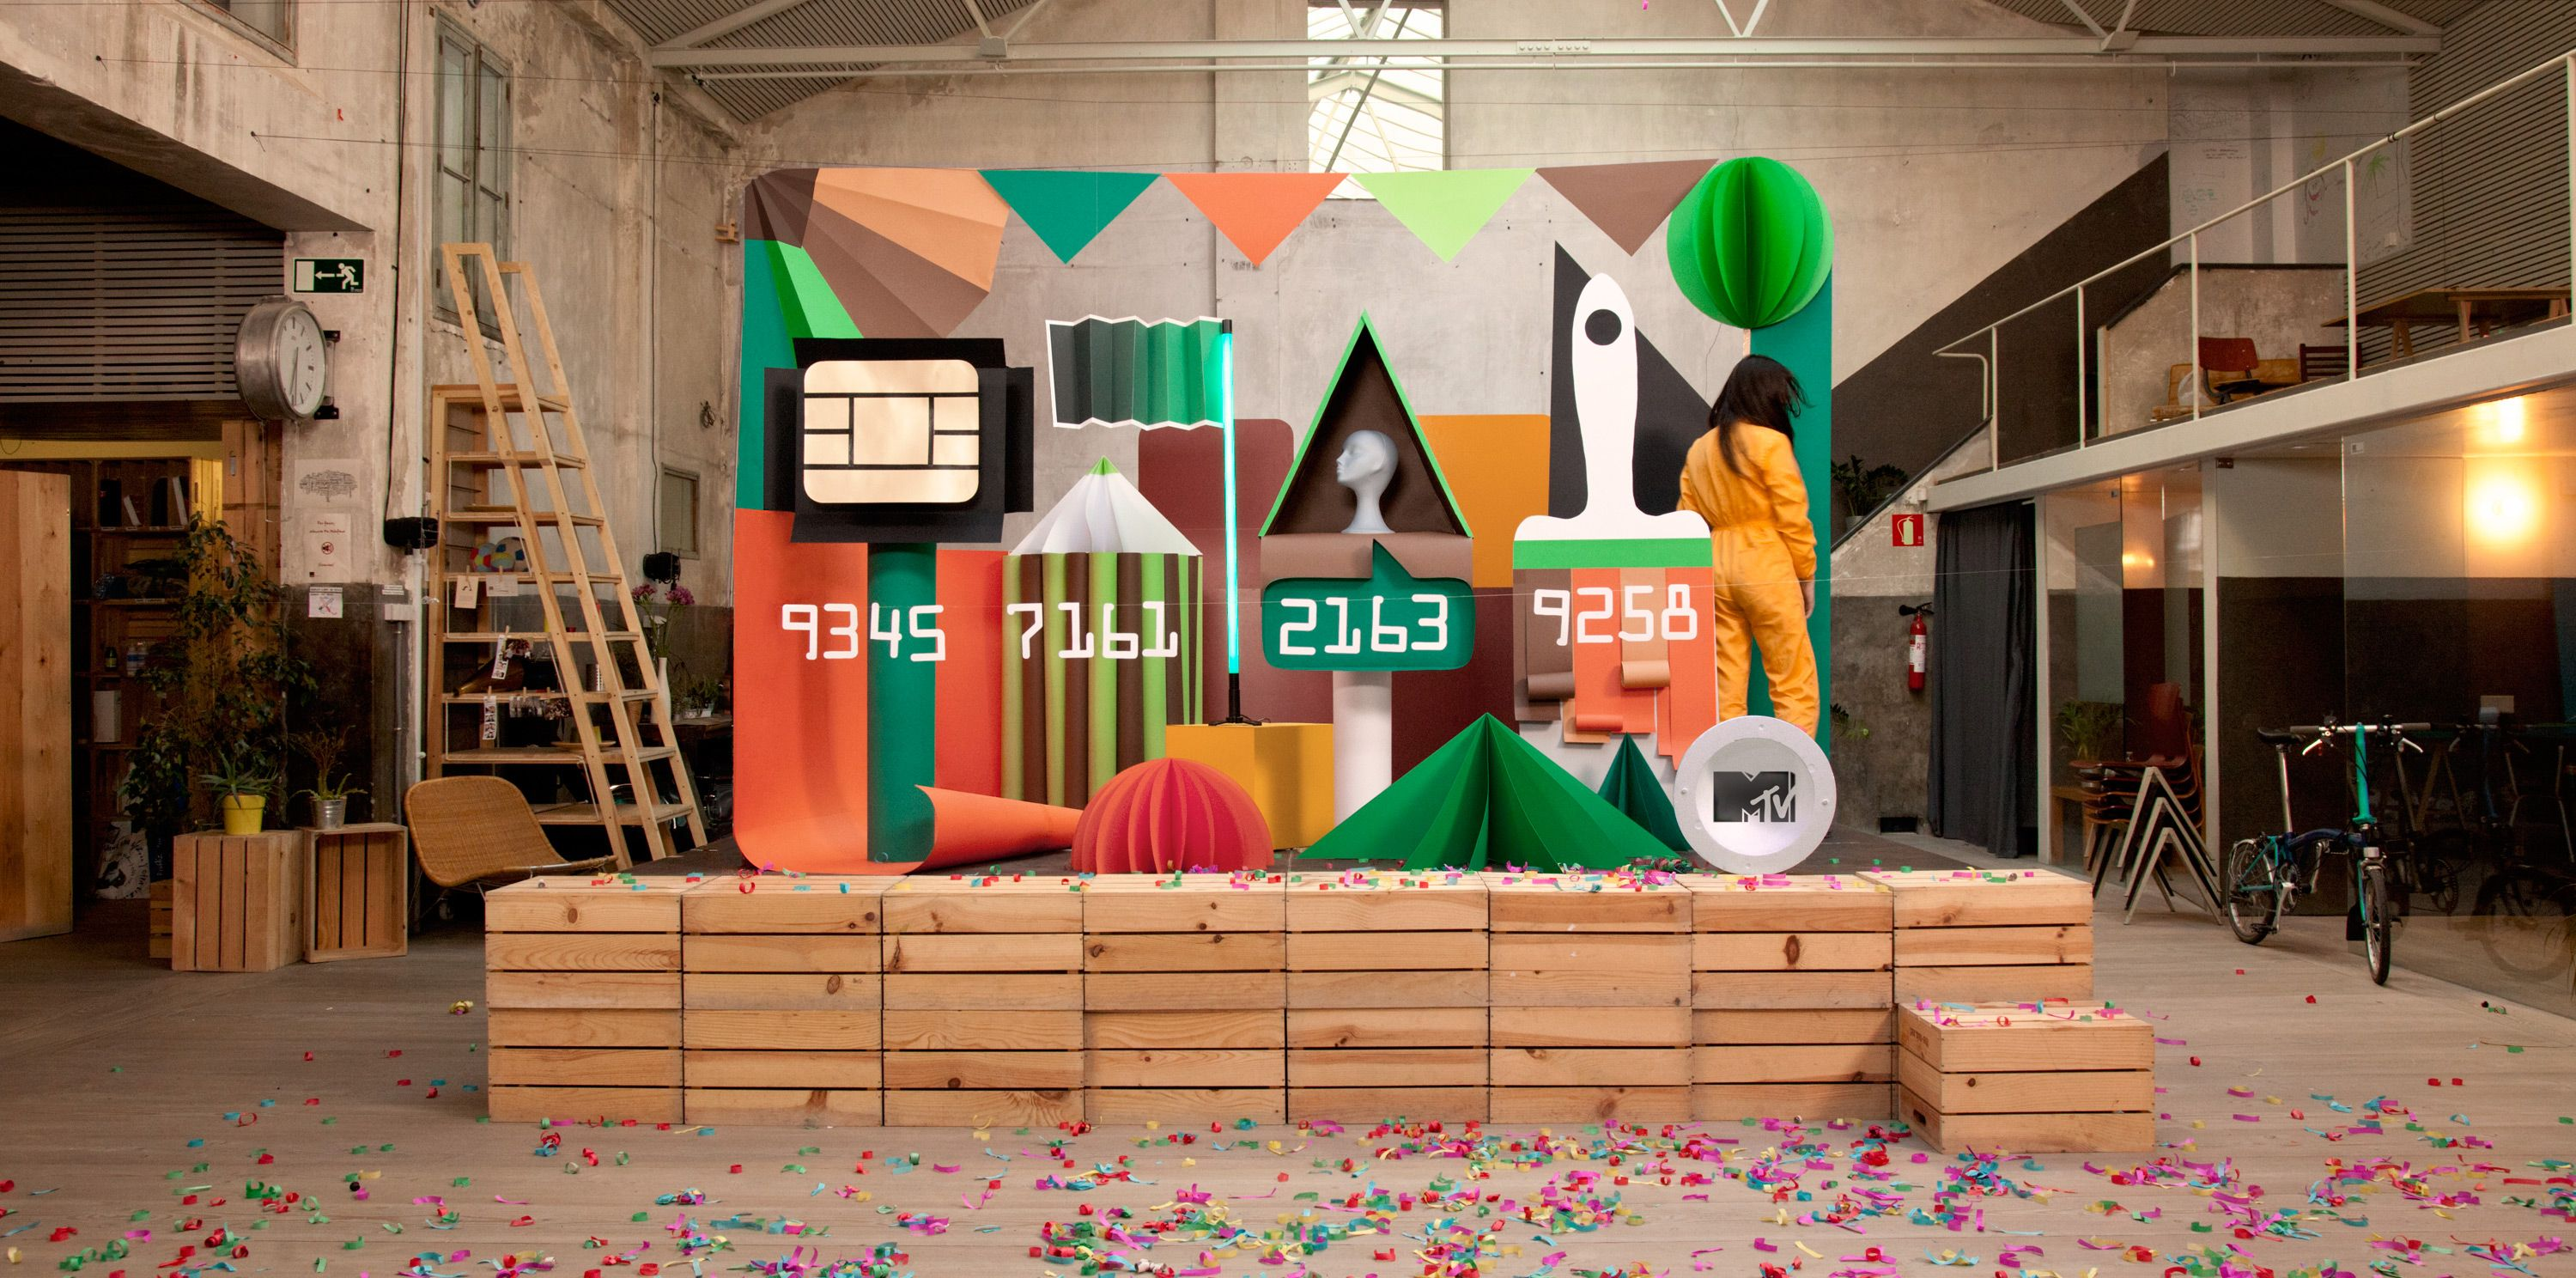 MTV wanted to create a real giant cardboard still life for a TV commercial to promote the contest for design students organized by MTV and the Spanish bank Bankia to design a credit card. The winners had a free design course in Istituto Europeo di Design in Madrid. The main challenge was to build the set and shoot in just one day.